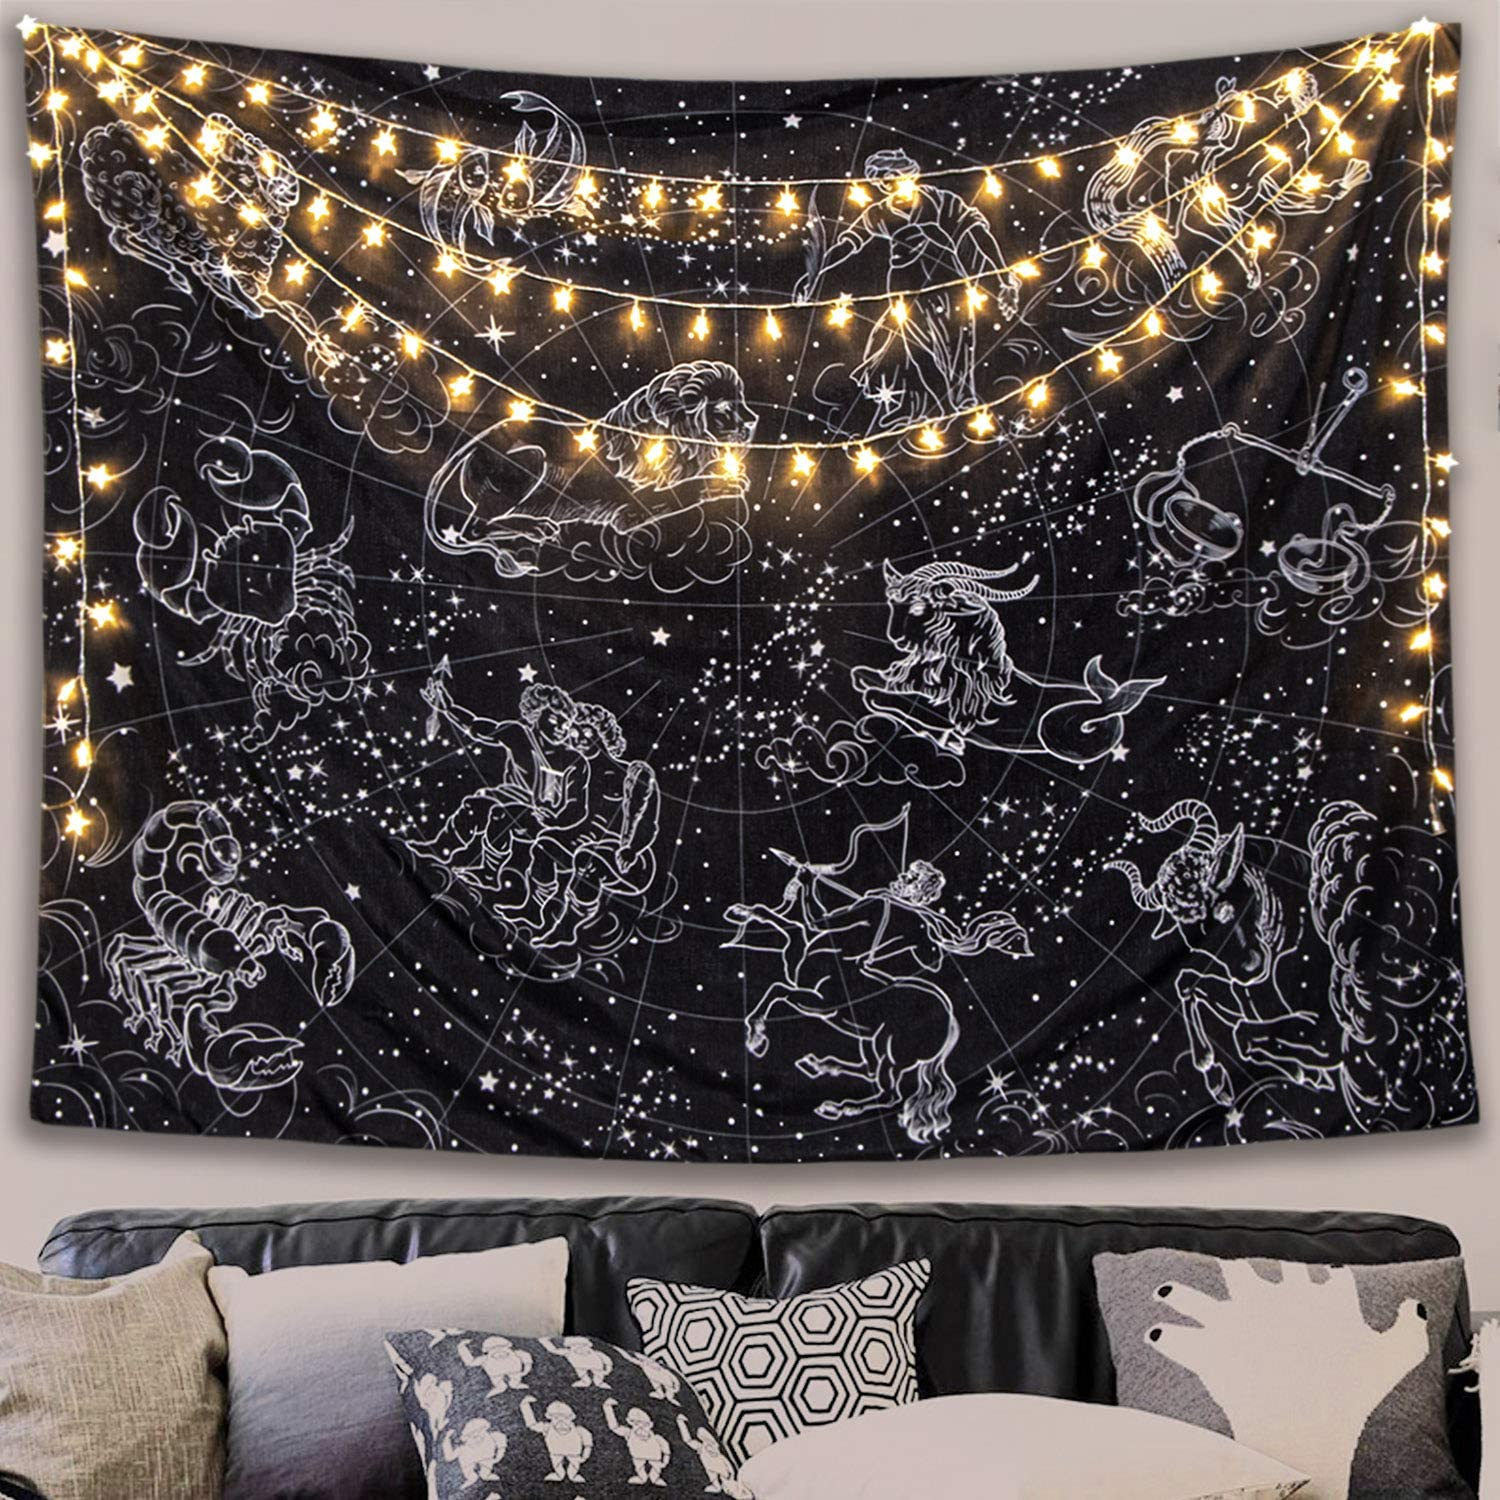 Fowocu Constellation Stars Tapestry Wall Hanging, Black and White Tapestry, Aesthetic Wall Tapestry for Bedroom Living Room Dorm (Black, L-60'' × 80'')